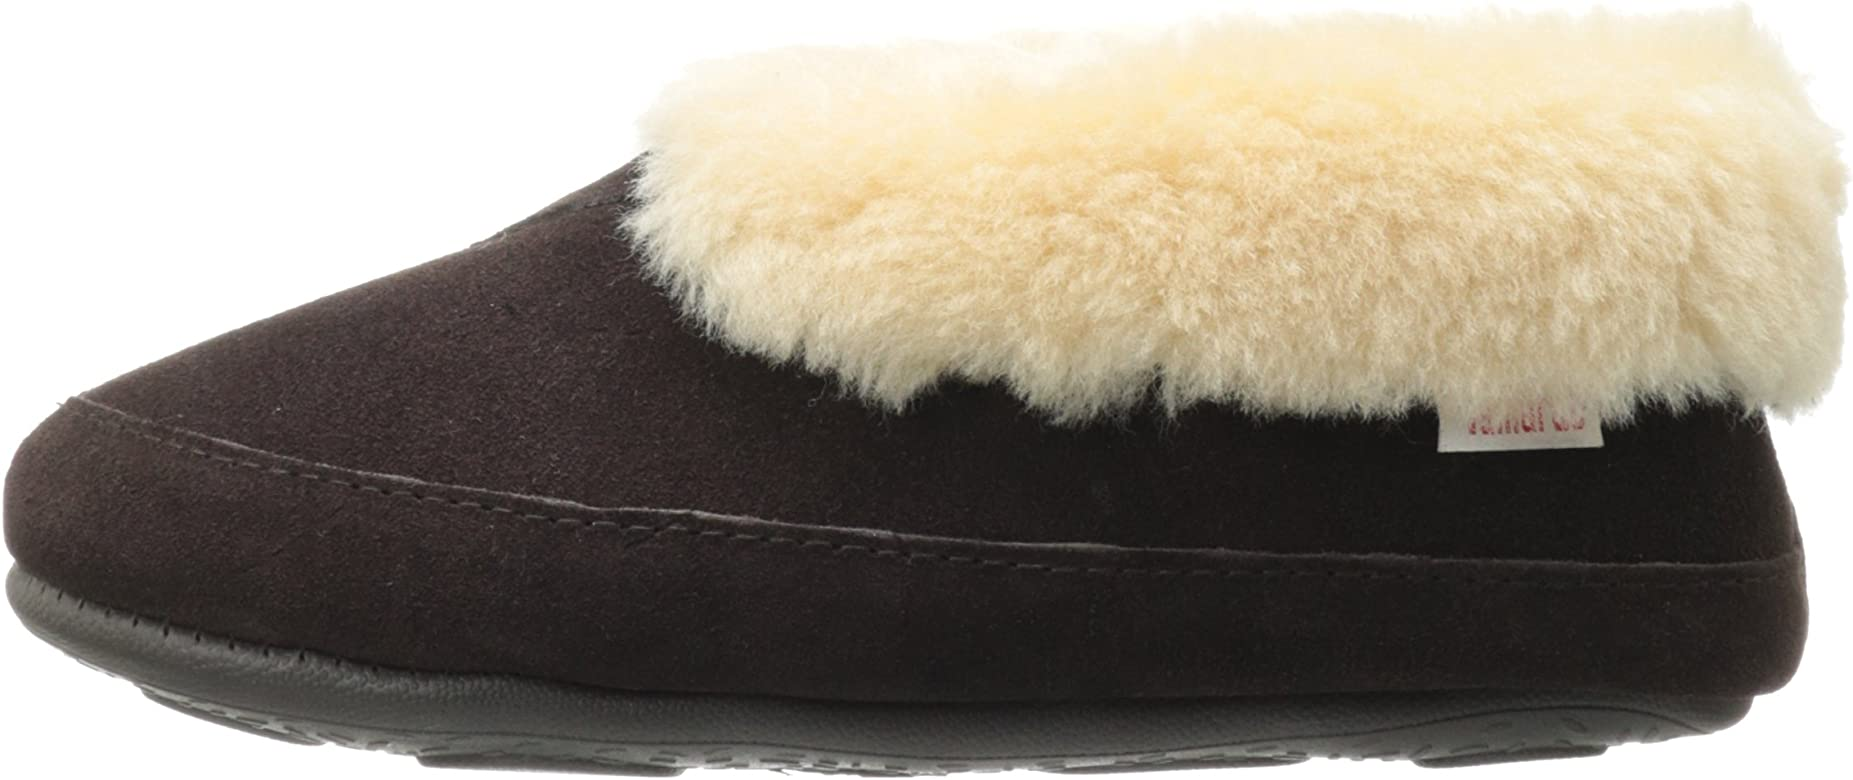 14190adf98061 Women's Galaxie Shearling Slipper